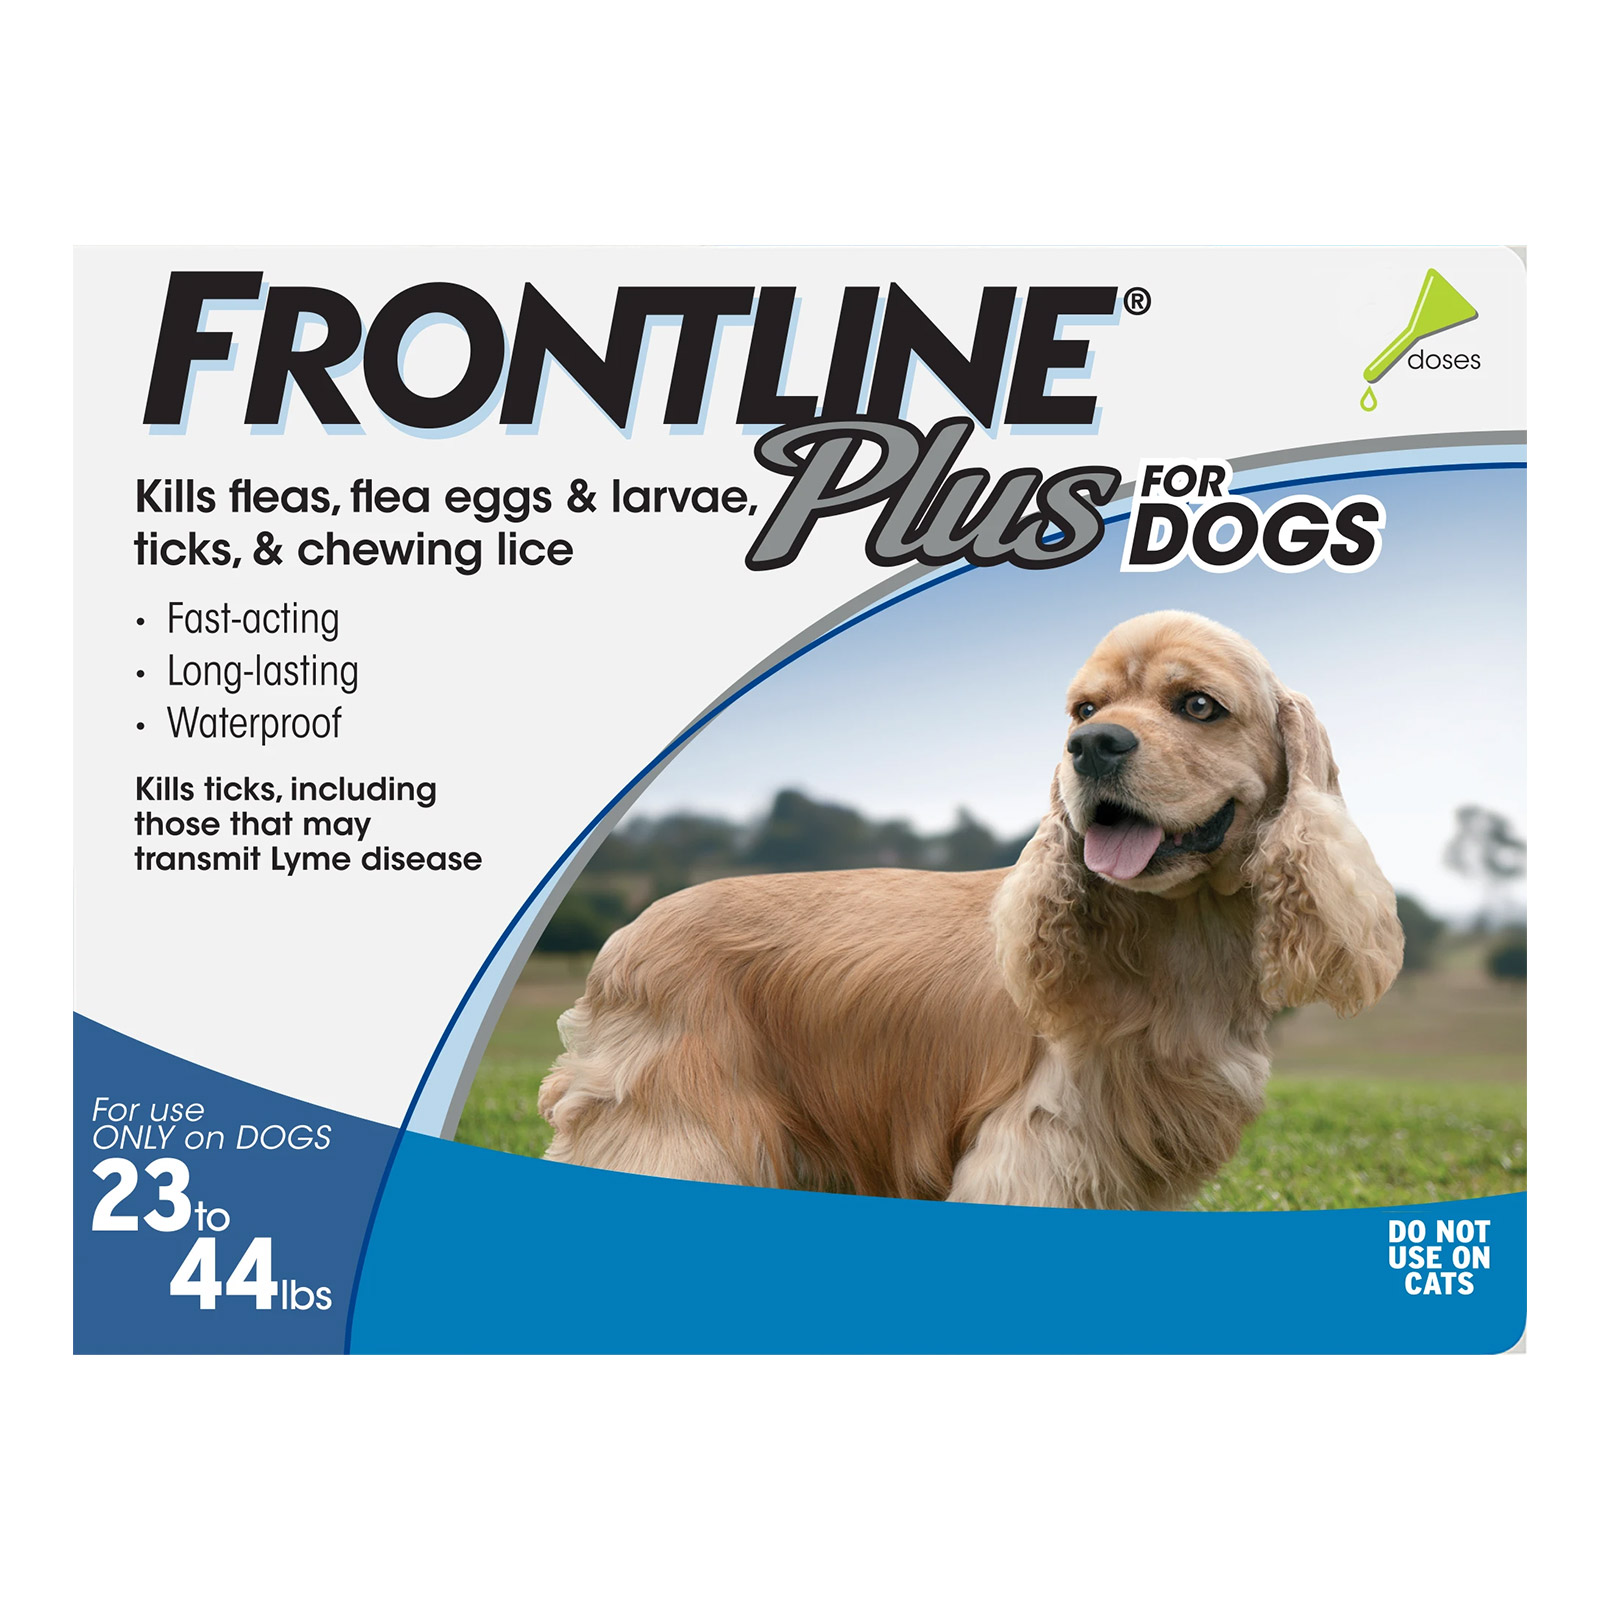 frontline plus for medium dogs 23-44 lbs (blue)  6 months on lovemypets.com